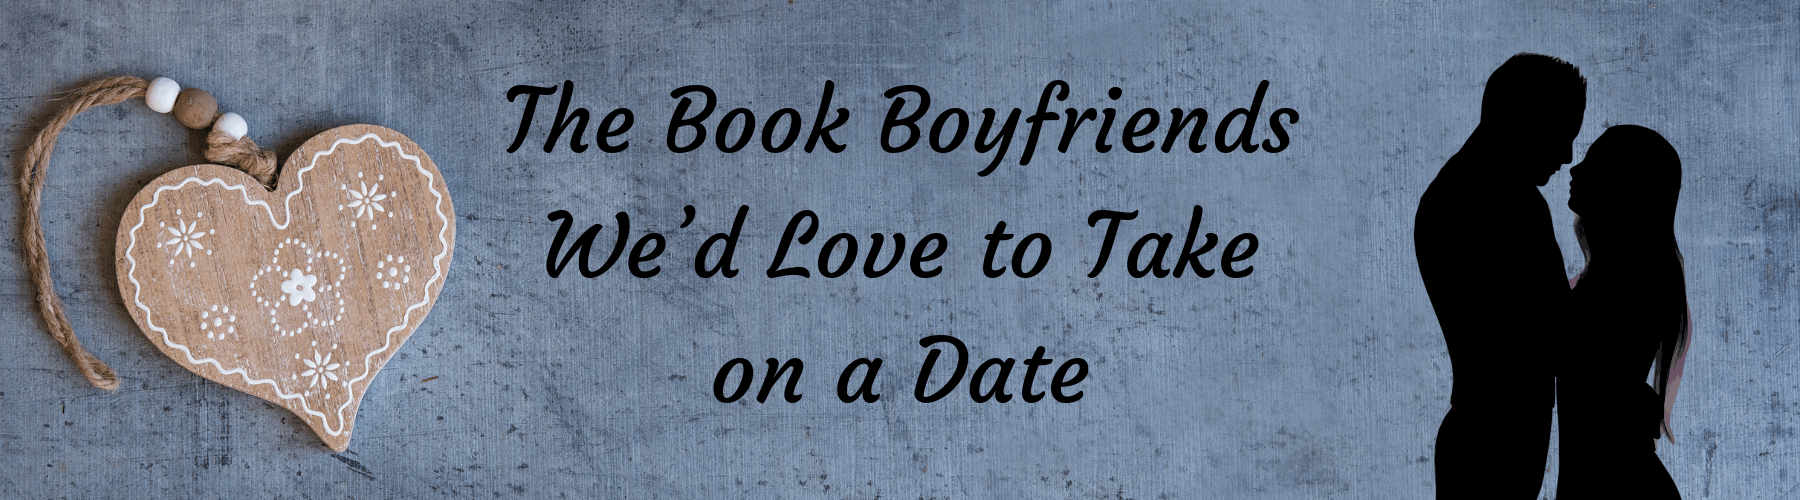 The Book Boyfriends We'd Love to Take on a Date